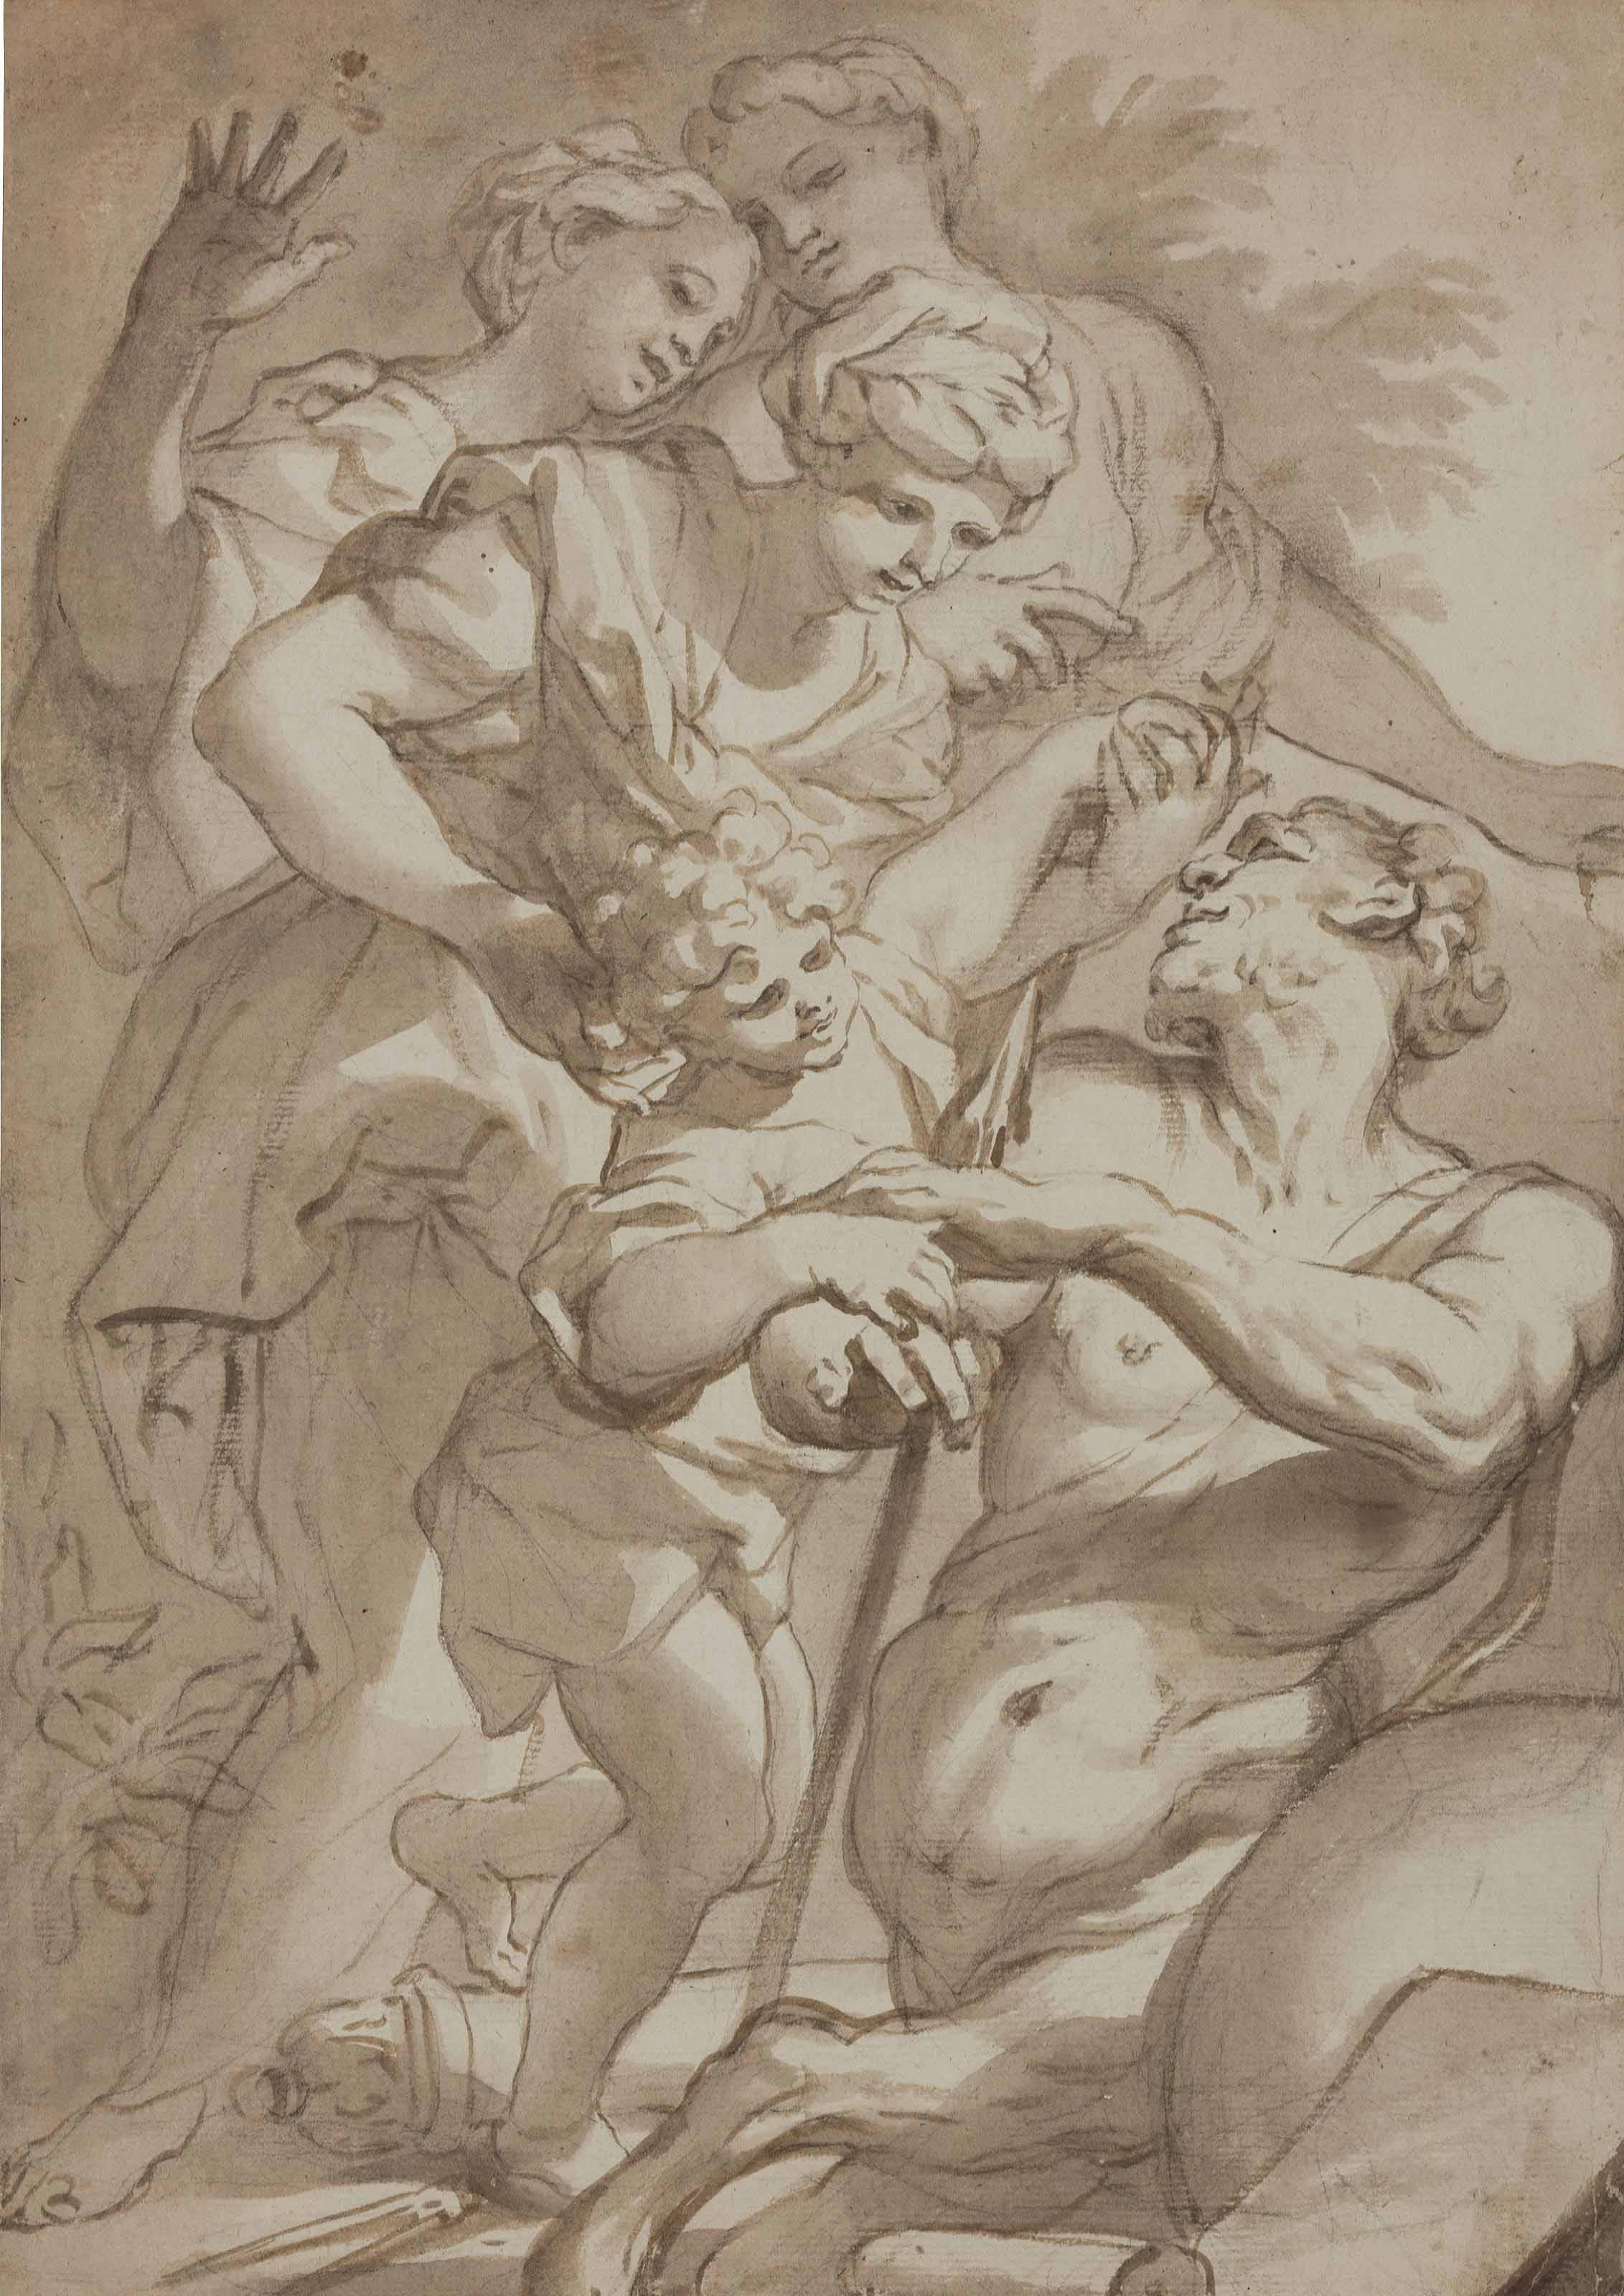 Nymphs entrusting Chiron with the infant Achilles